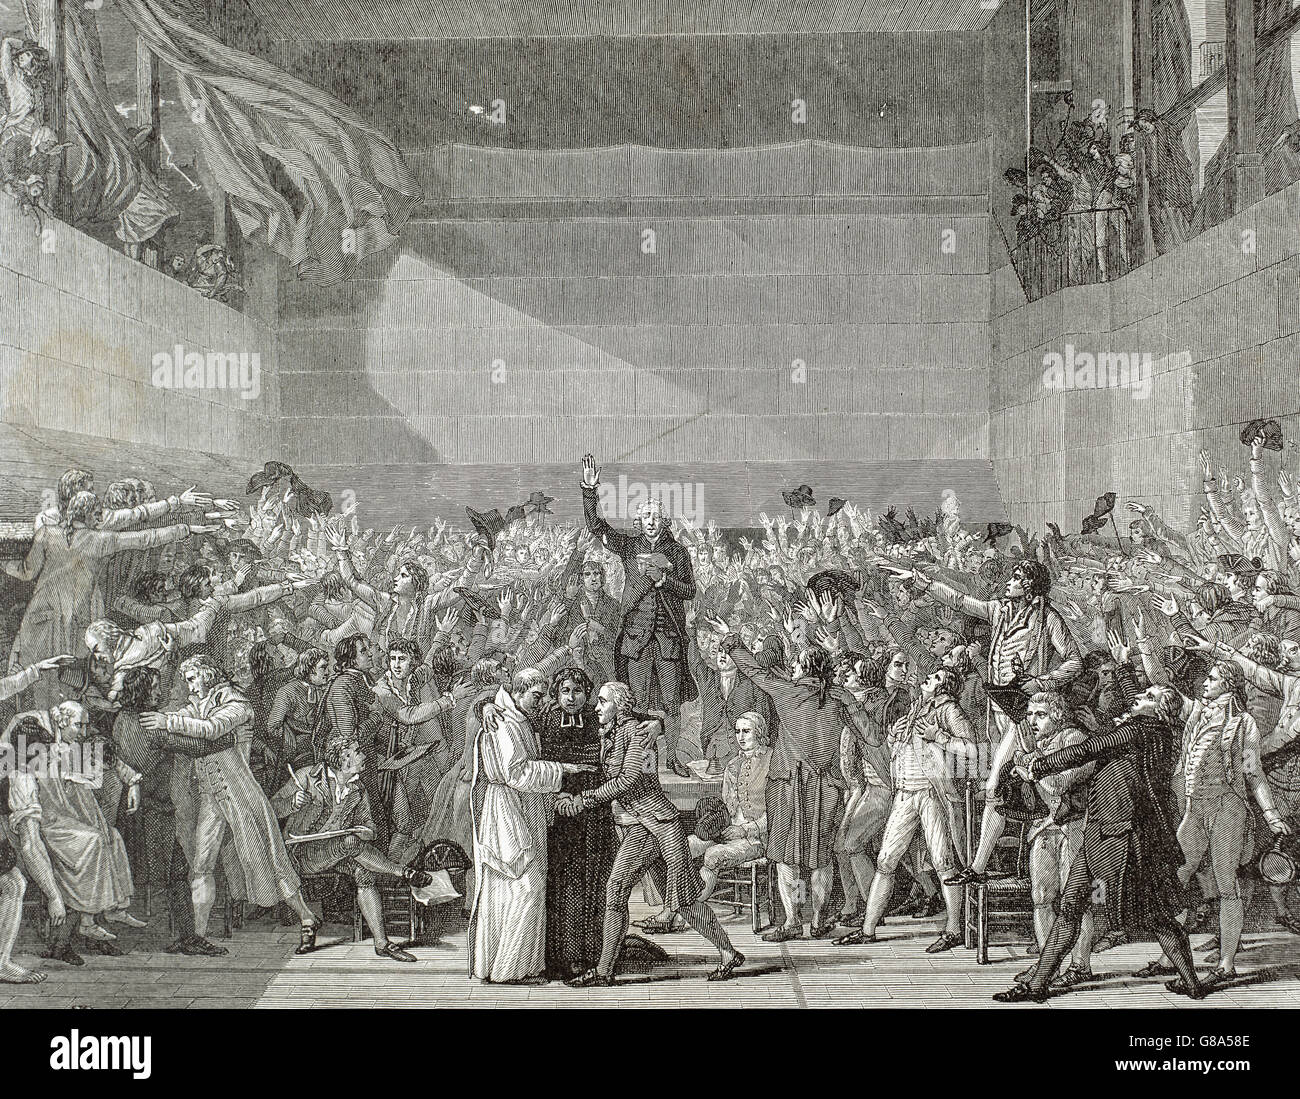 The Tennis Court Oath (June 20, 1789). Engraving, 19th century.